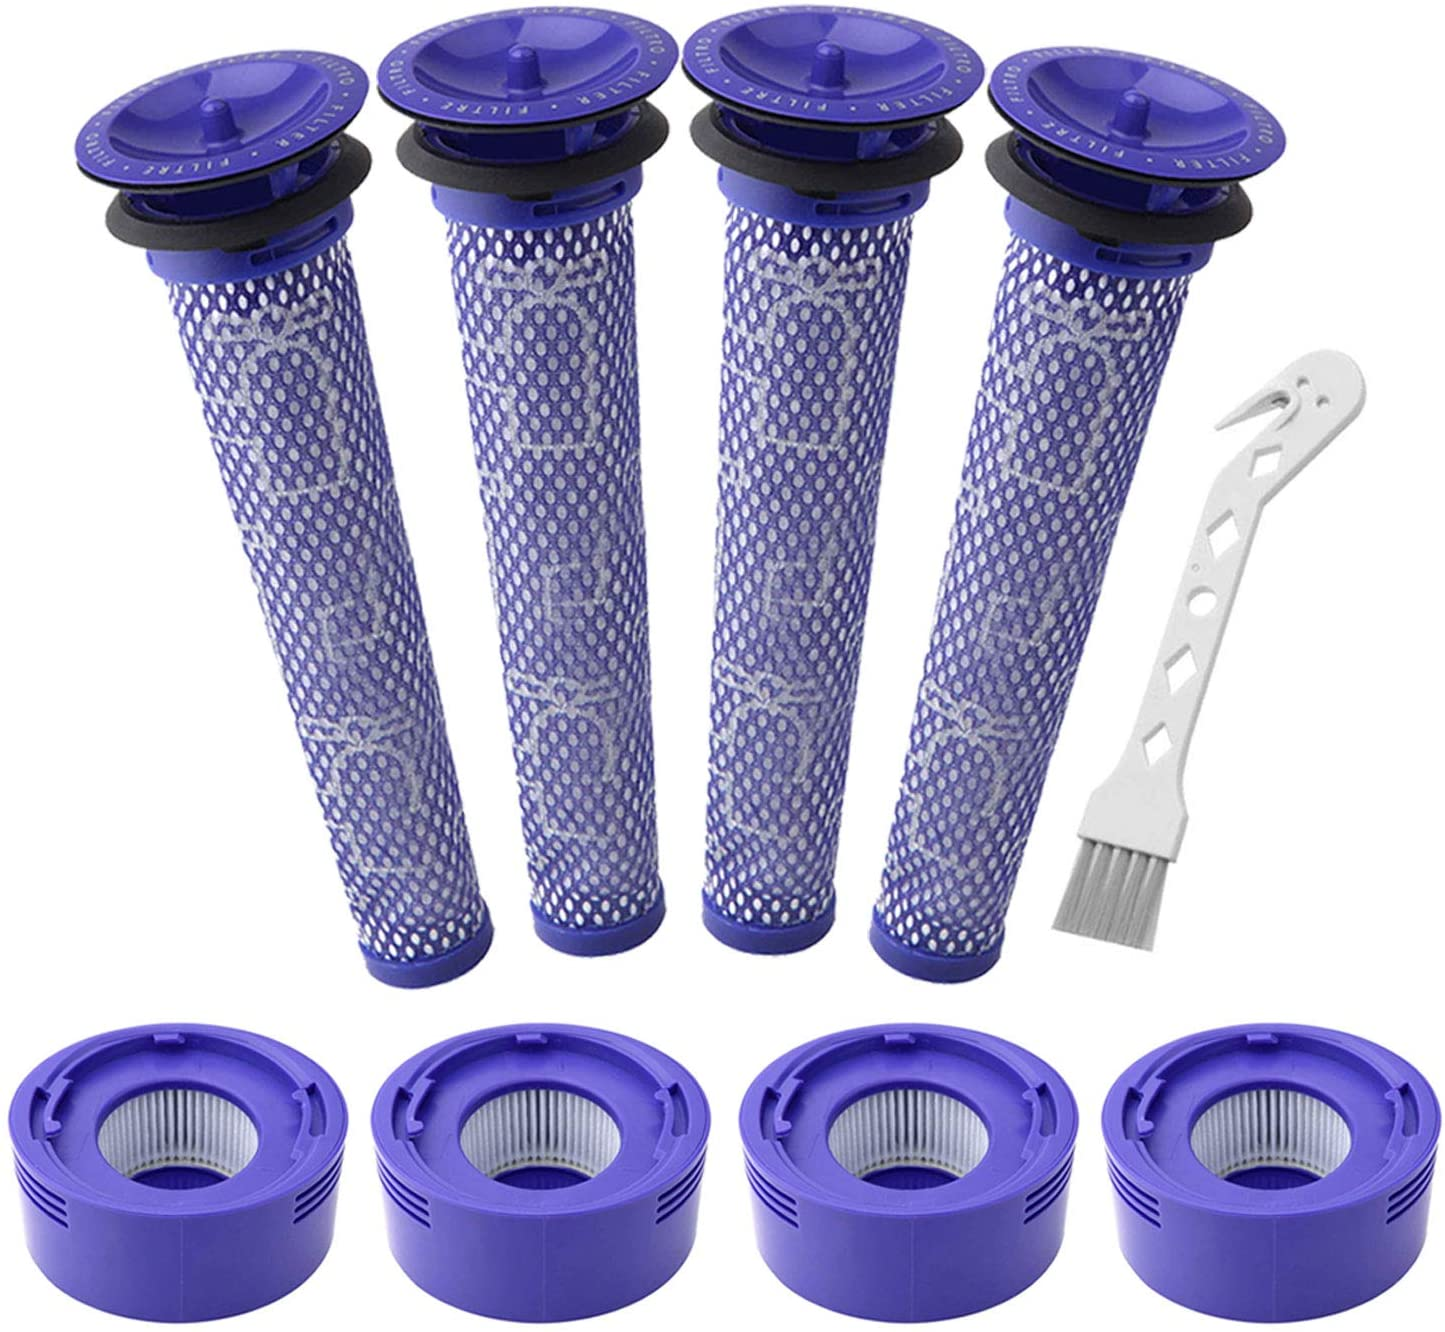 Lemige 4 Pack Pre-Filters and 4 Pack HEPA Post-Filter Replacements Compatible with Dyson V7, V8 Animal and V8 Absolute Cordless Vacuum, Compare to Part 965661-01 and 967478-01